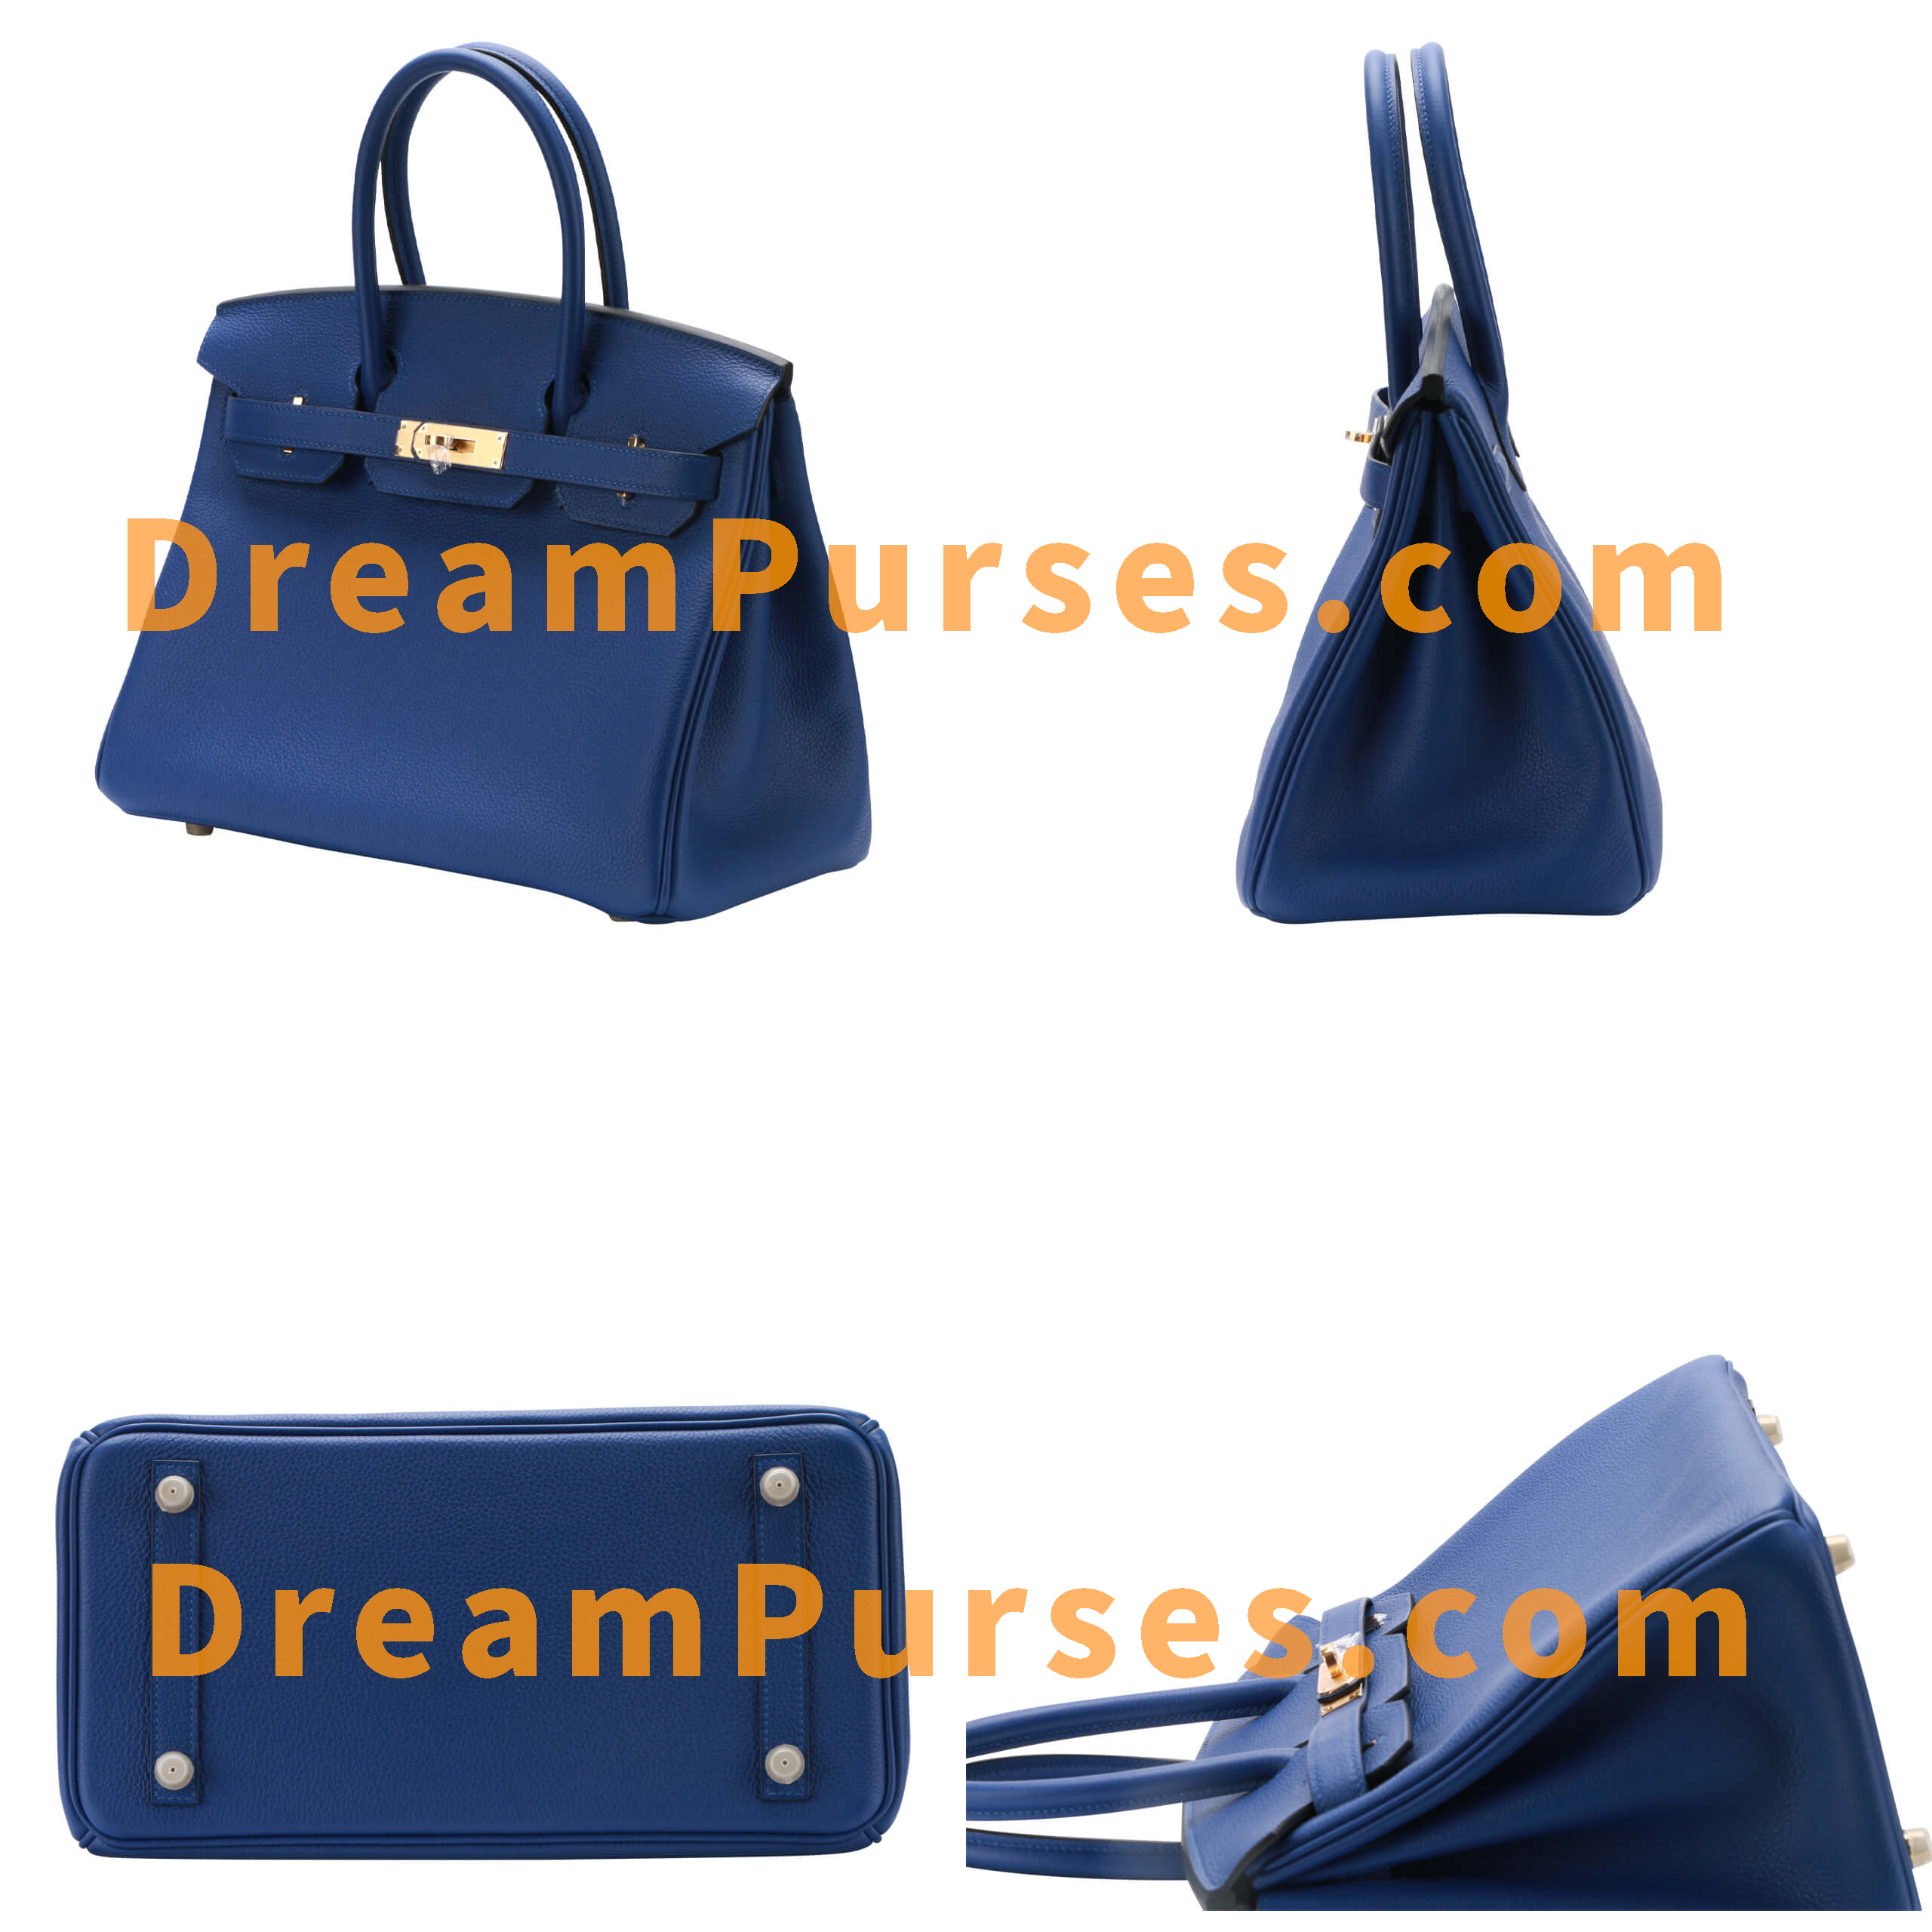 The Super Fake Birkin has perfect shape as the real Hermes Birkin bag